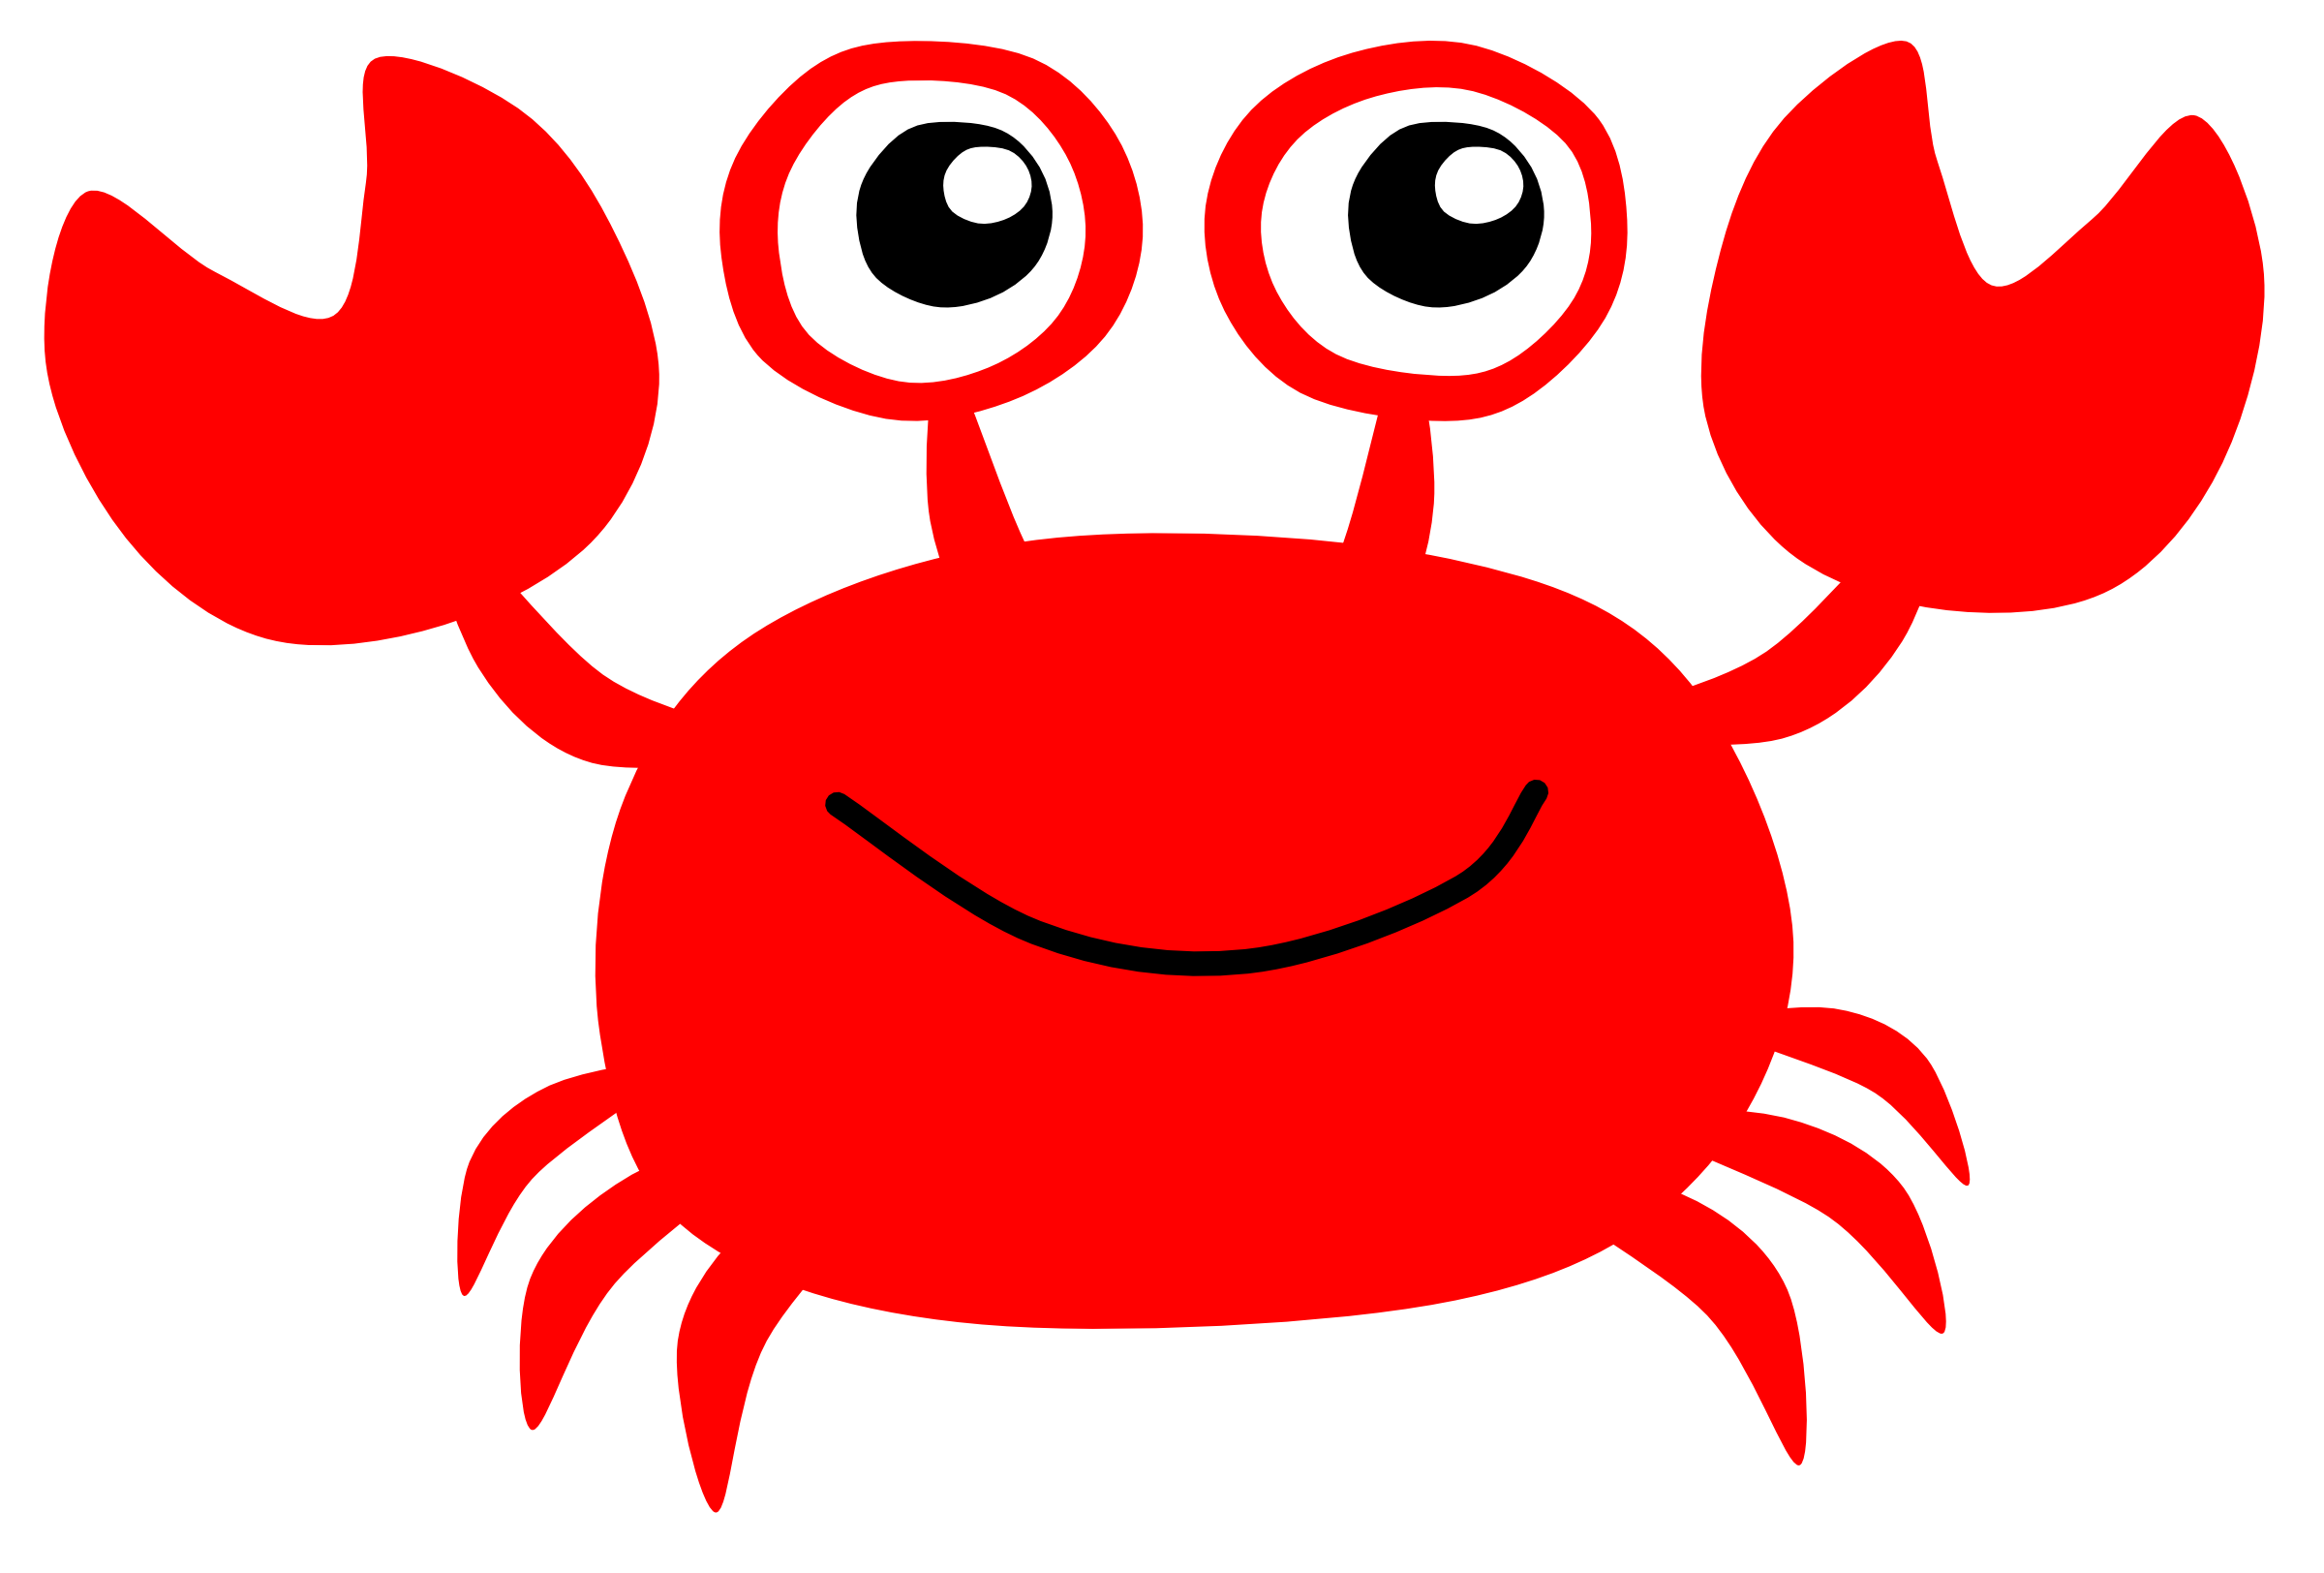 Cute Crab Png - Crabs clipart cute, Crabs cute Transparent FREE for download on ...